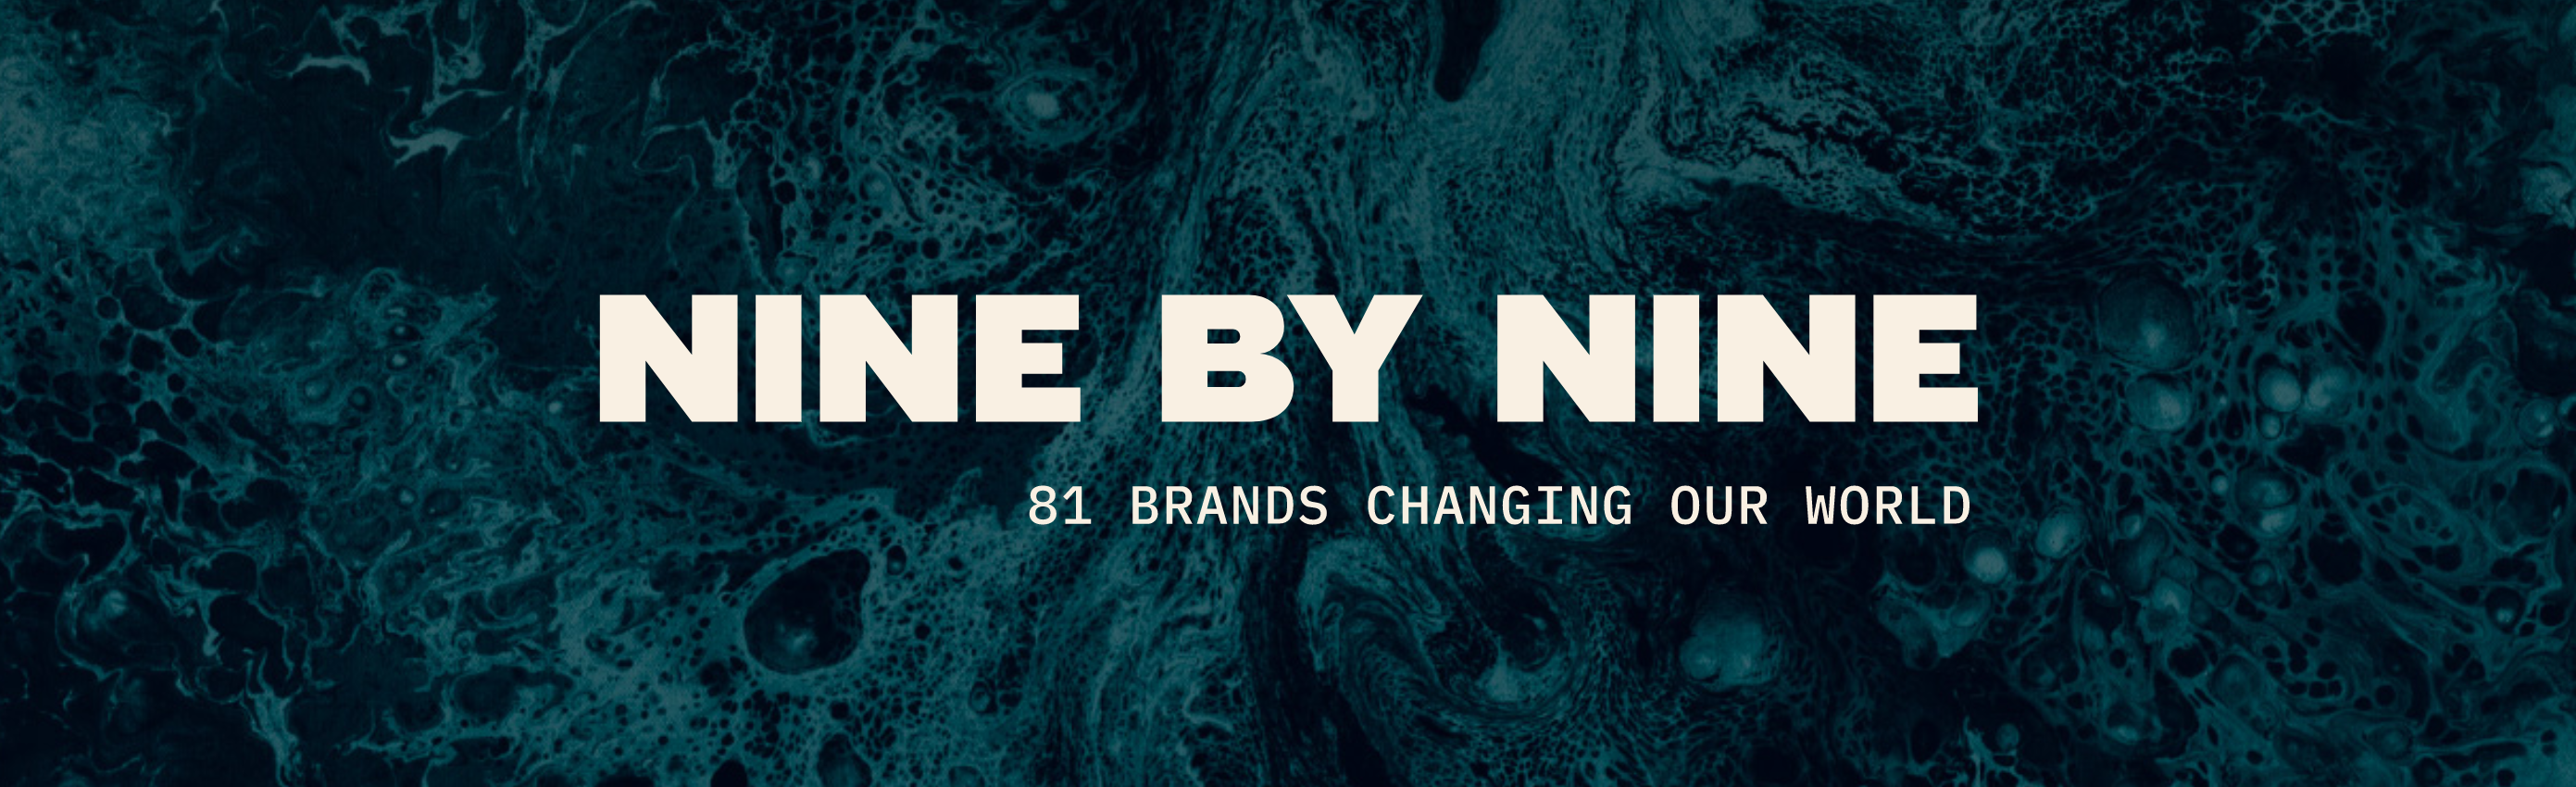 Nine by Nine Report: 81 Brands changing our world